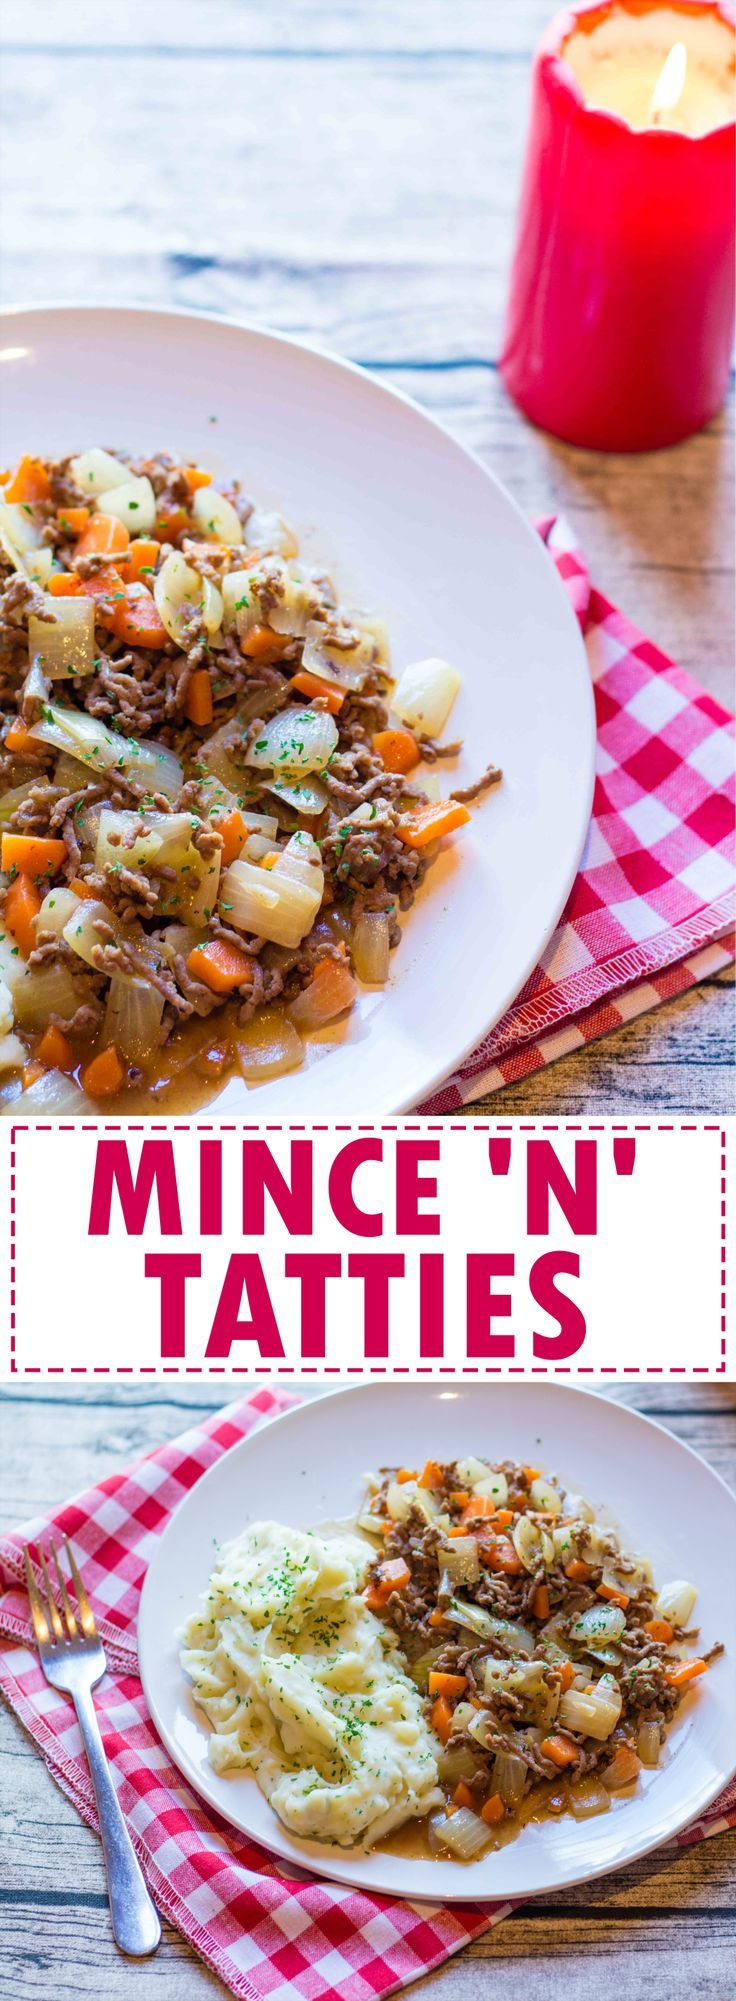 Mince 'n' tatties is the best budget, easy to make comfort food. 3 main ingredients used. Can be done in 30 mins.